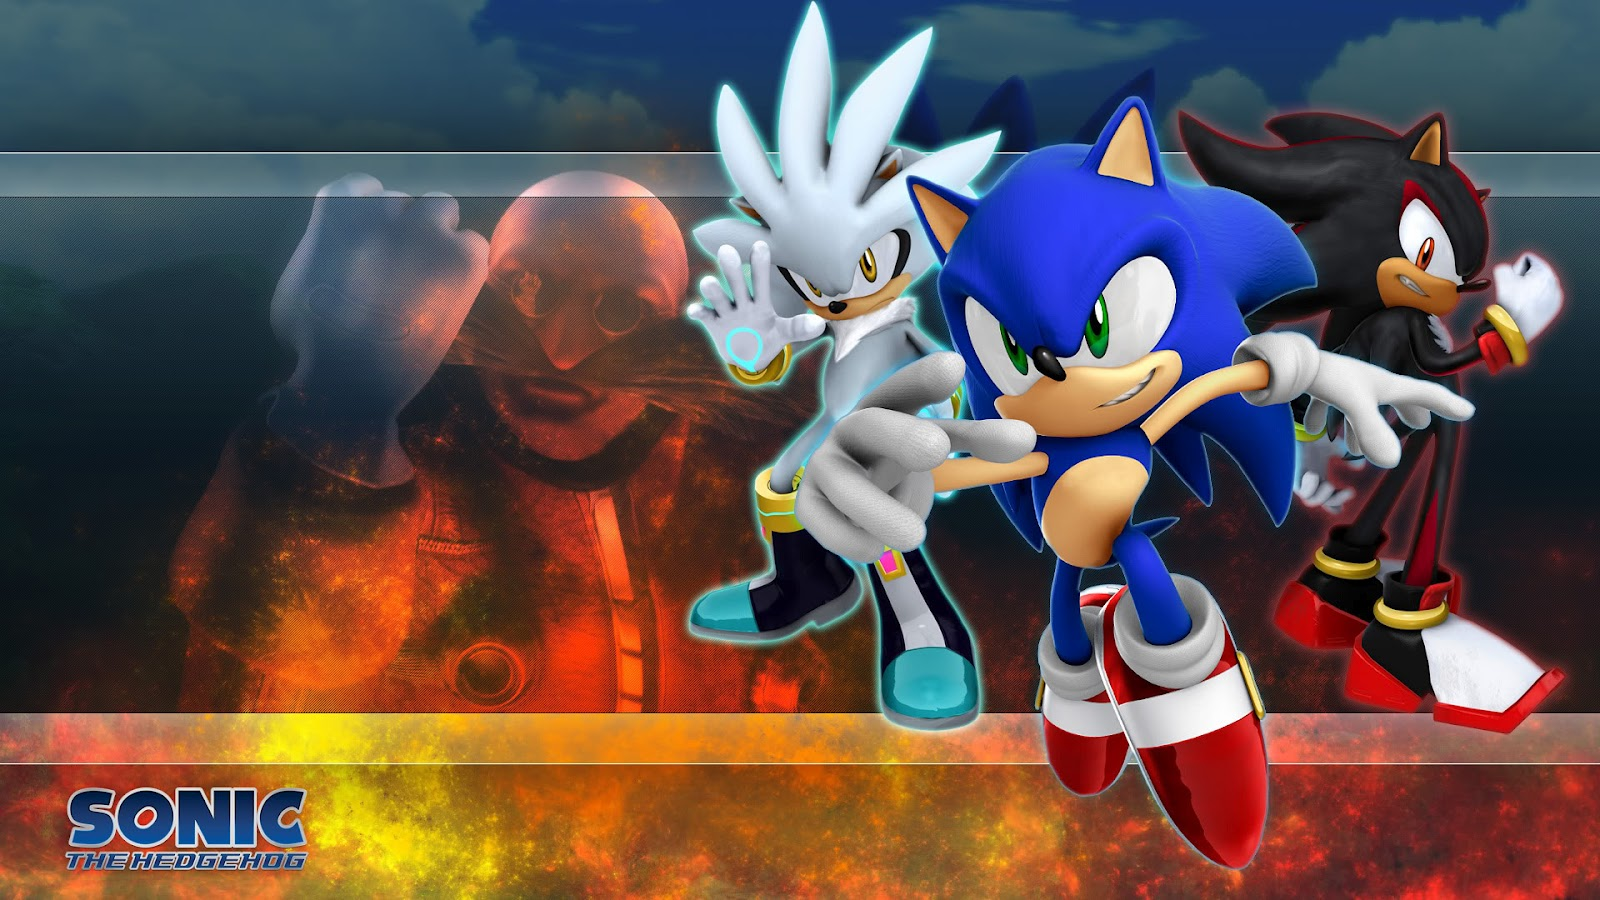 Cute Love Animations Wallpapers Your Wallpaper Sonic The Hedgehog Wallpaper